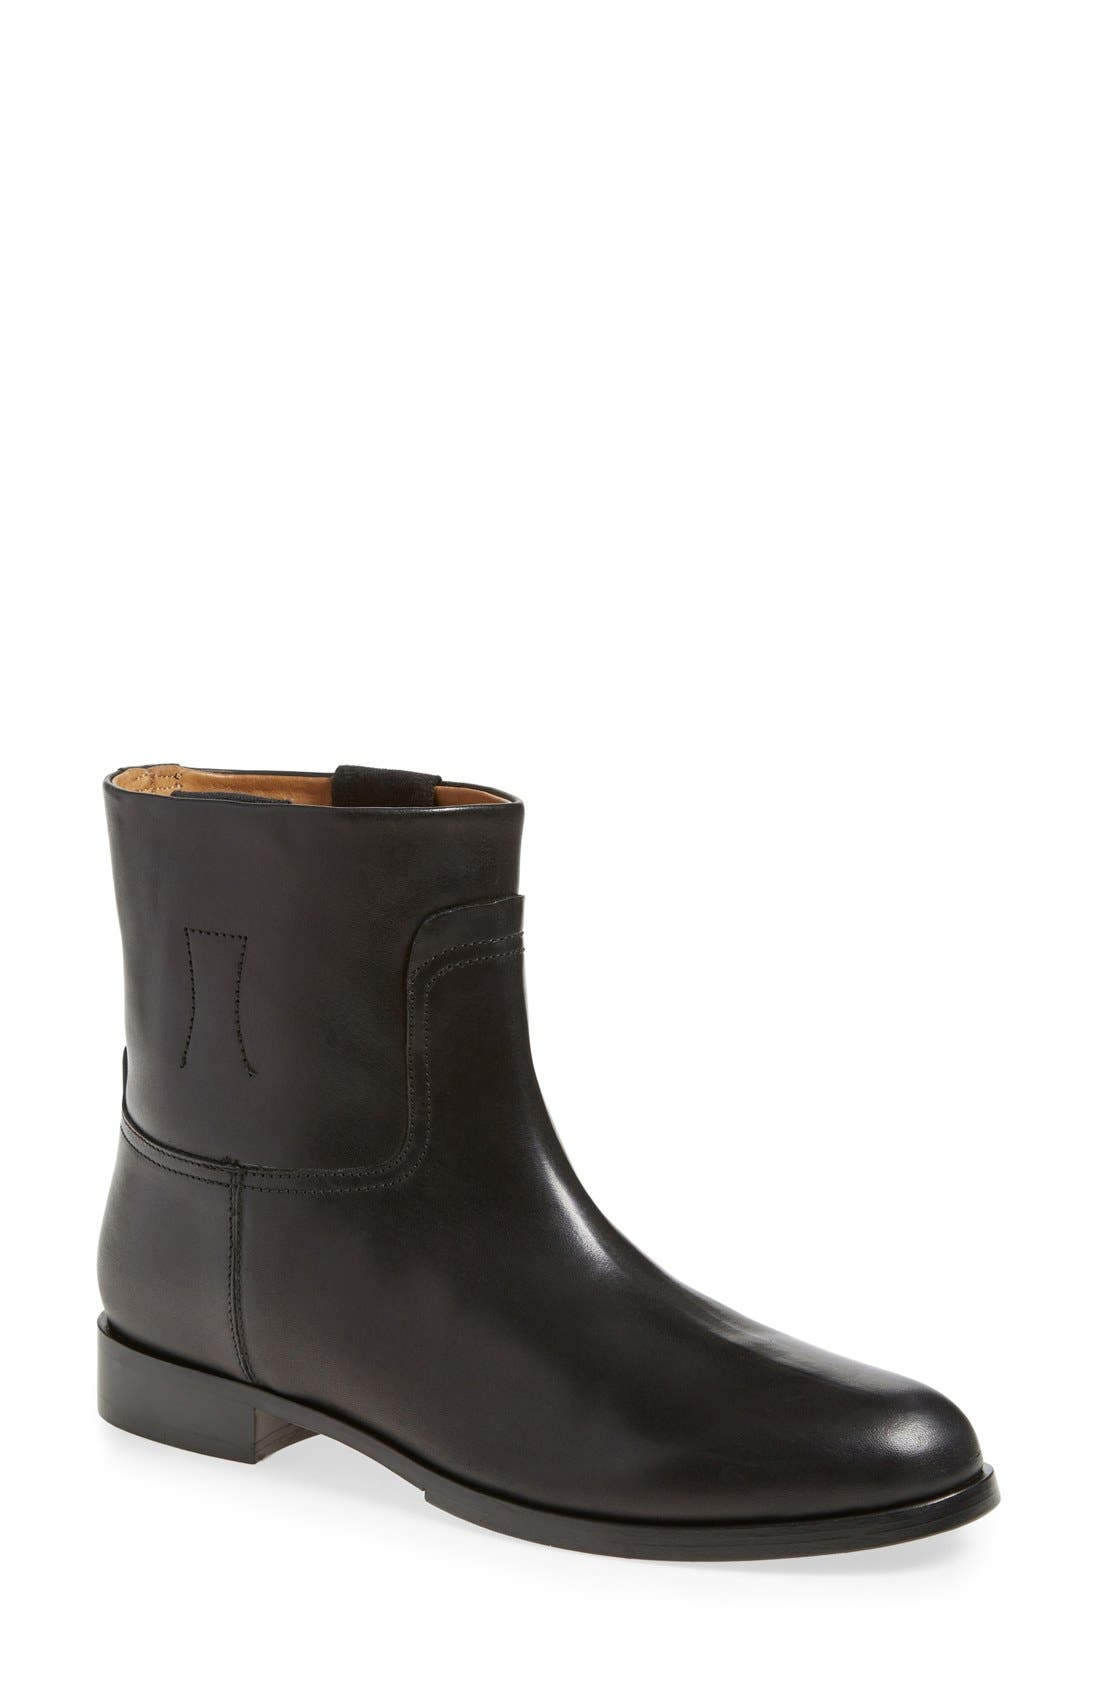 RAG & BONE,                             'Holly' Ankle Bootie,                             Main thumbnail 1, color,                             001